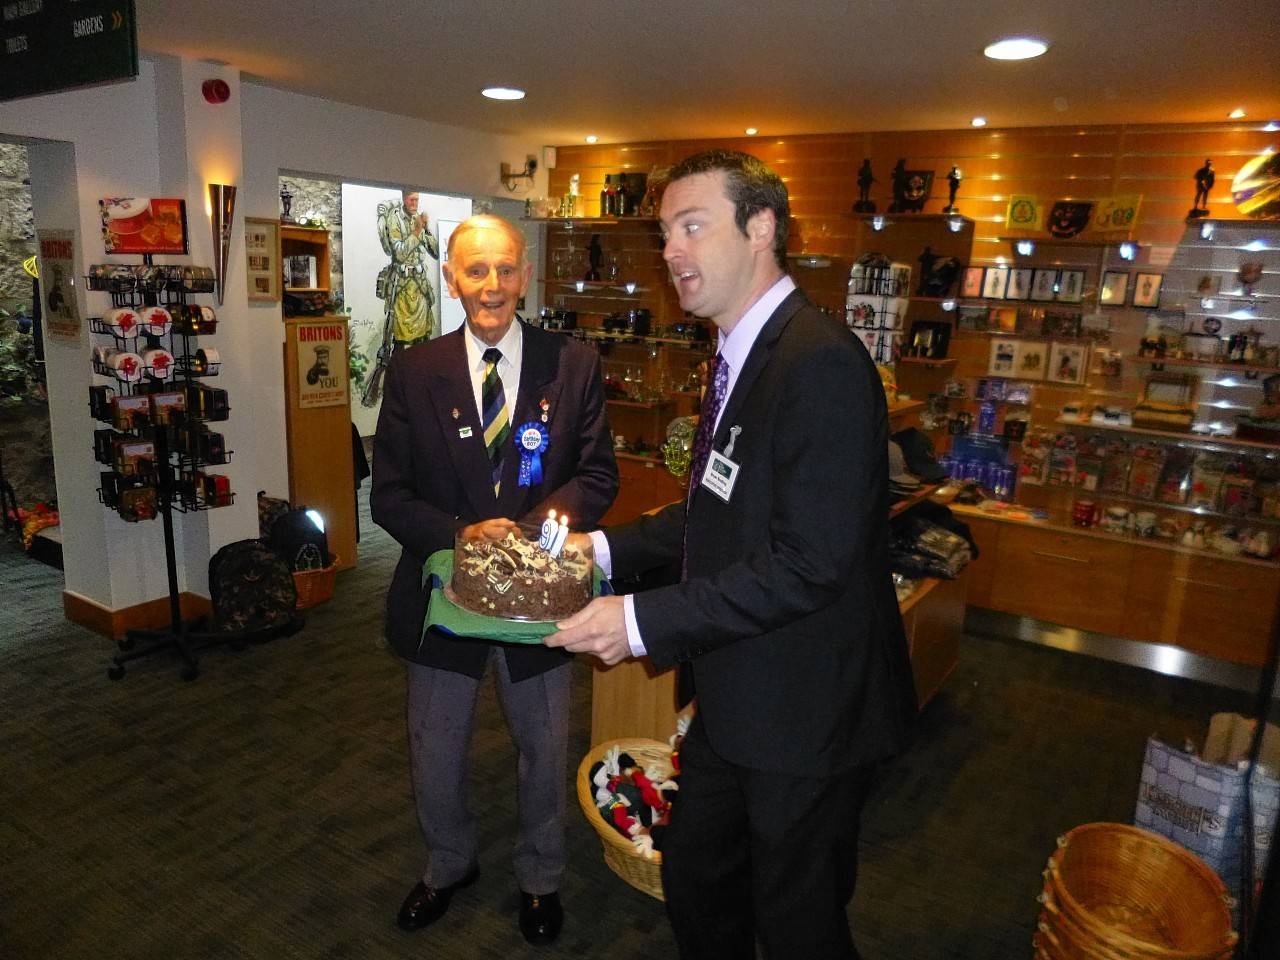 Jim Glennie receives his 90th birthday cake from museum executive director, Bryan Snelling.